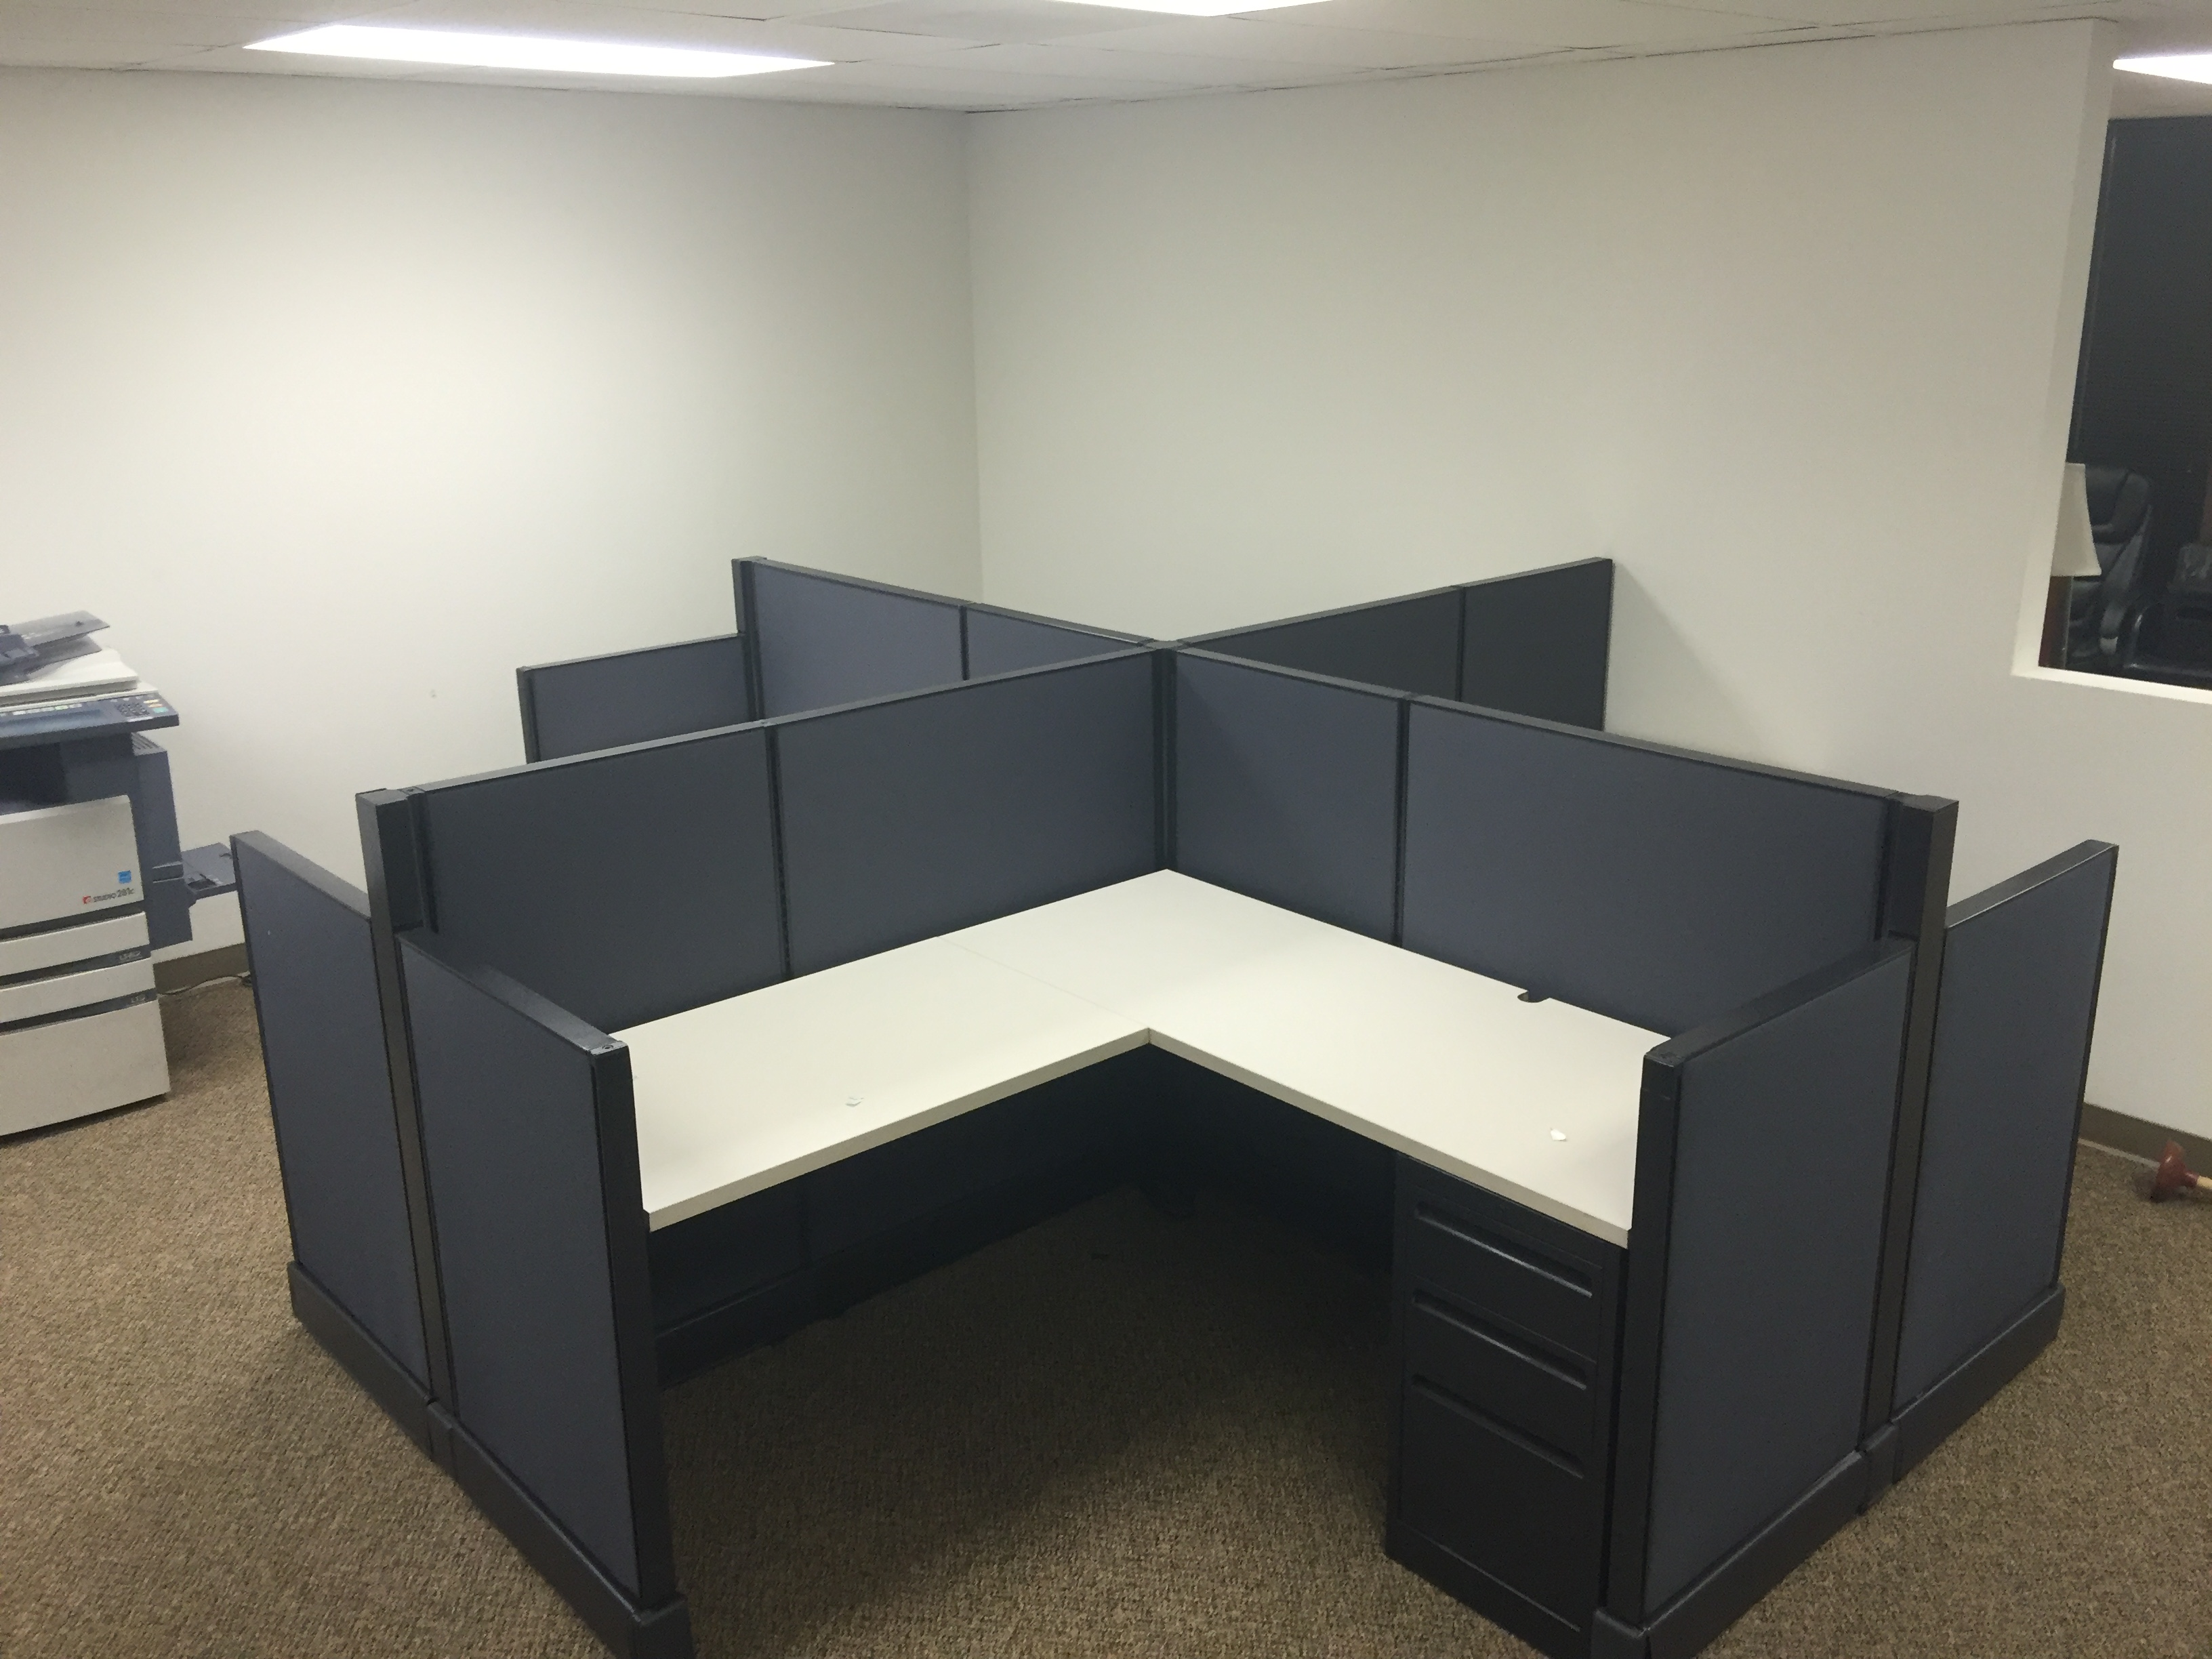 h u0026 v custom office cubicles - Office Cubicles